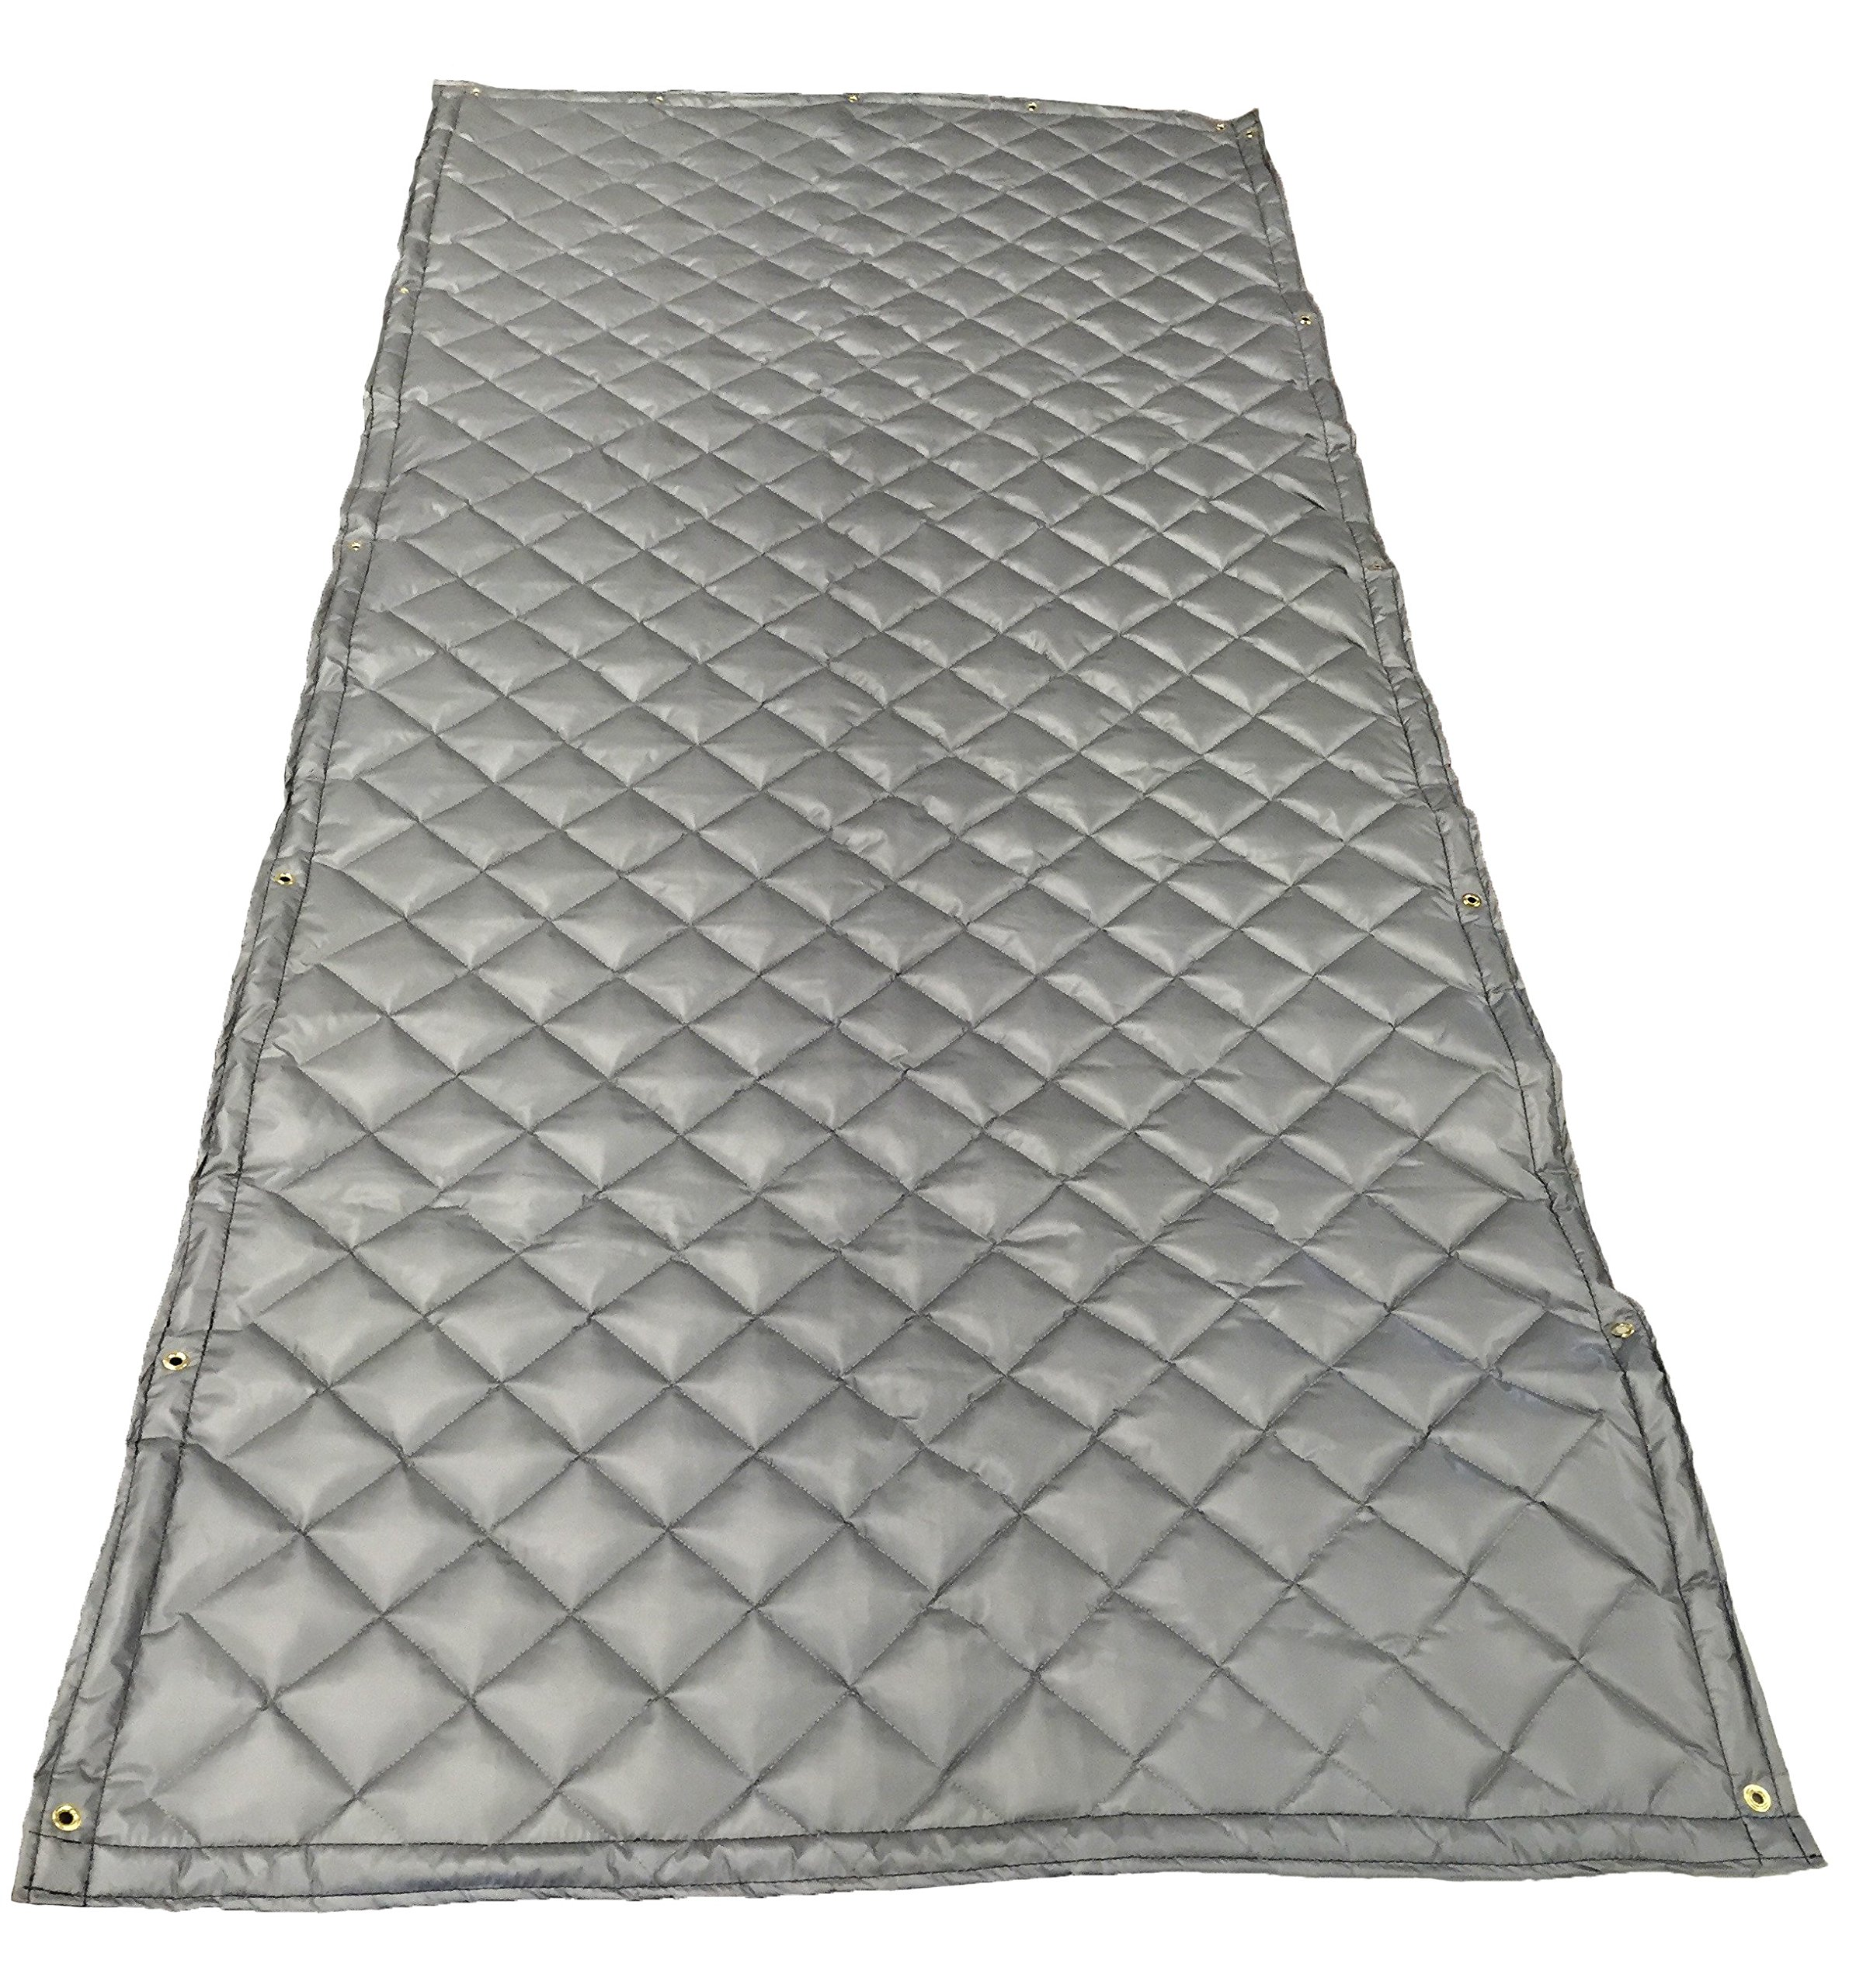 Acoustic Blanket - 4'-6'' X 8' Single Faced Fiberglass Wall Blanket w/ Grommets